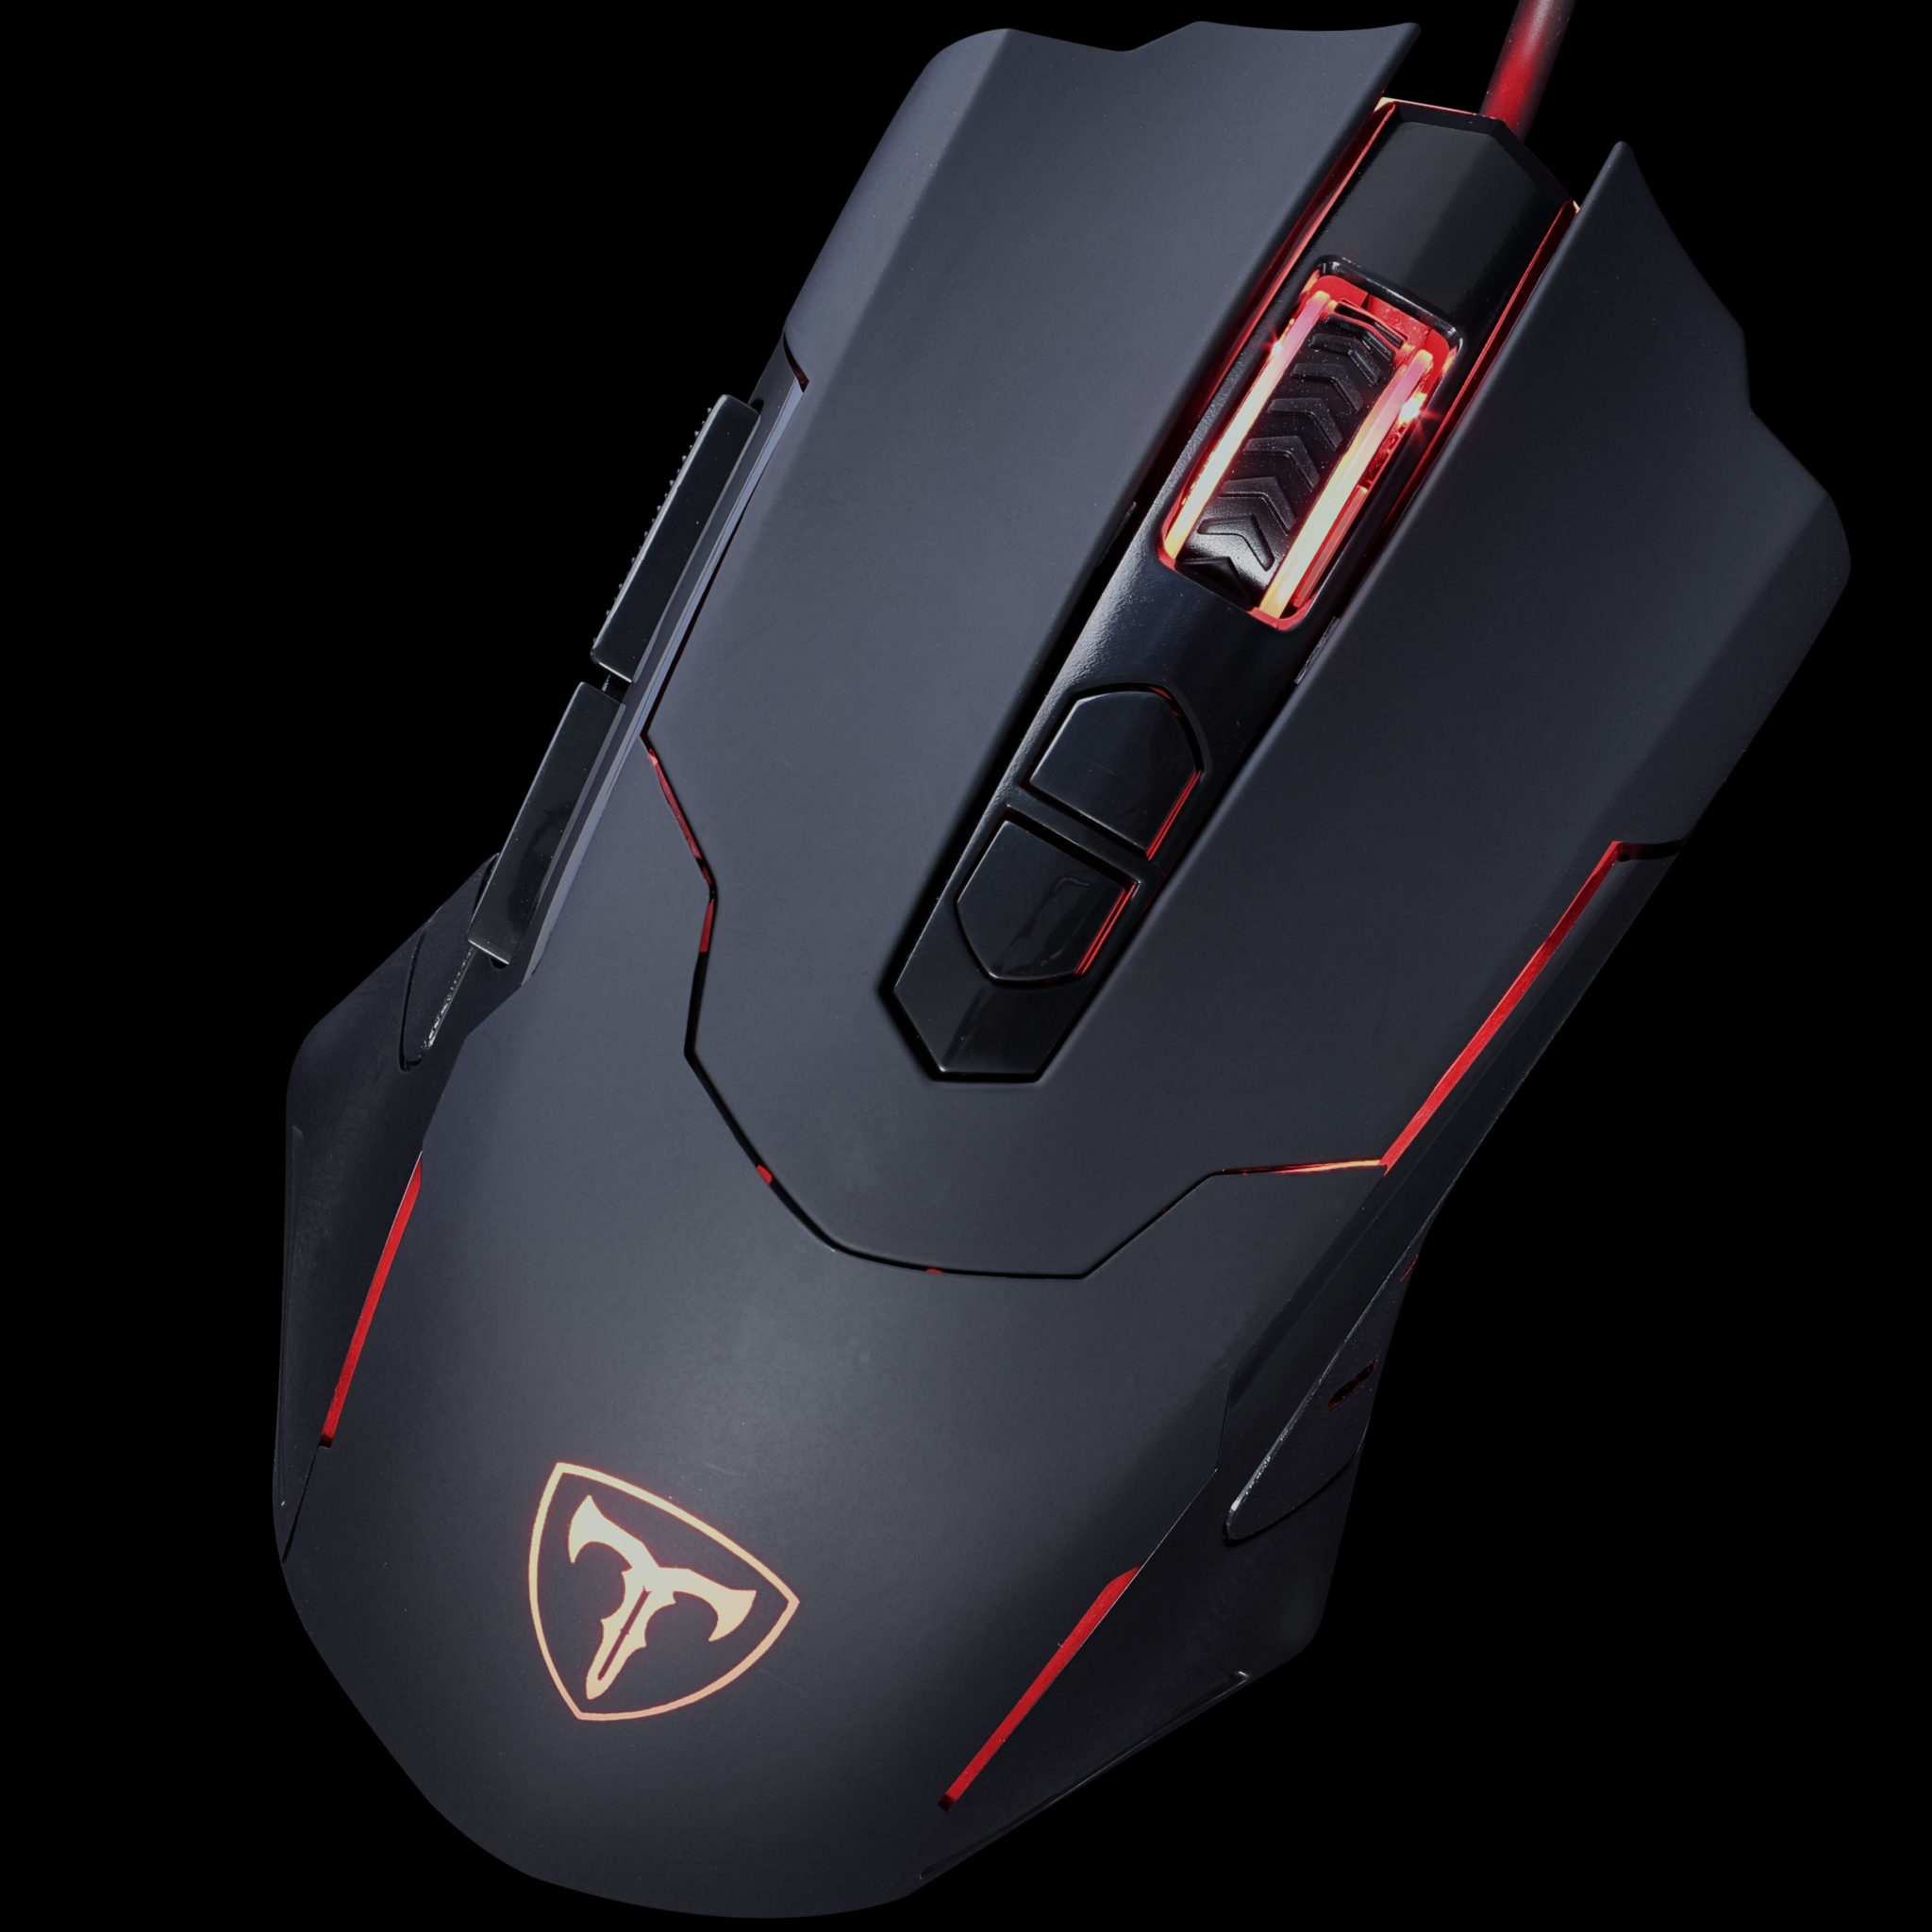 PICTEK T7 Wired Gaming Mouse Top View